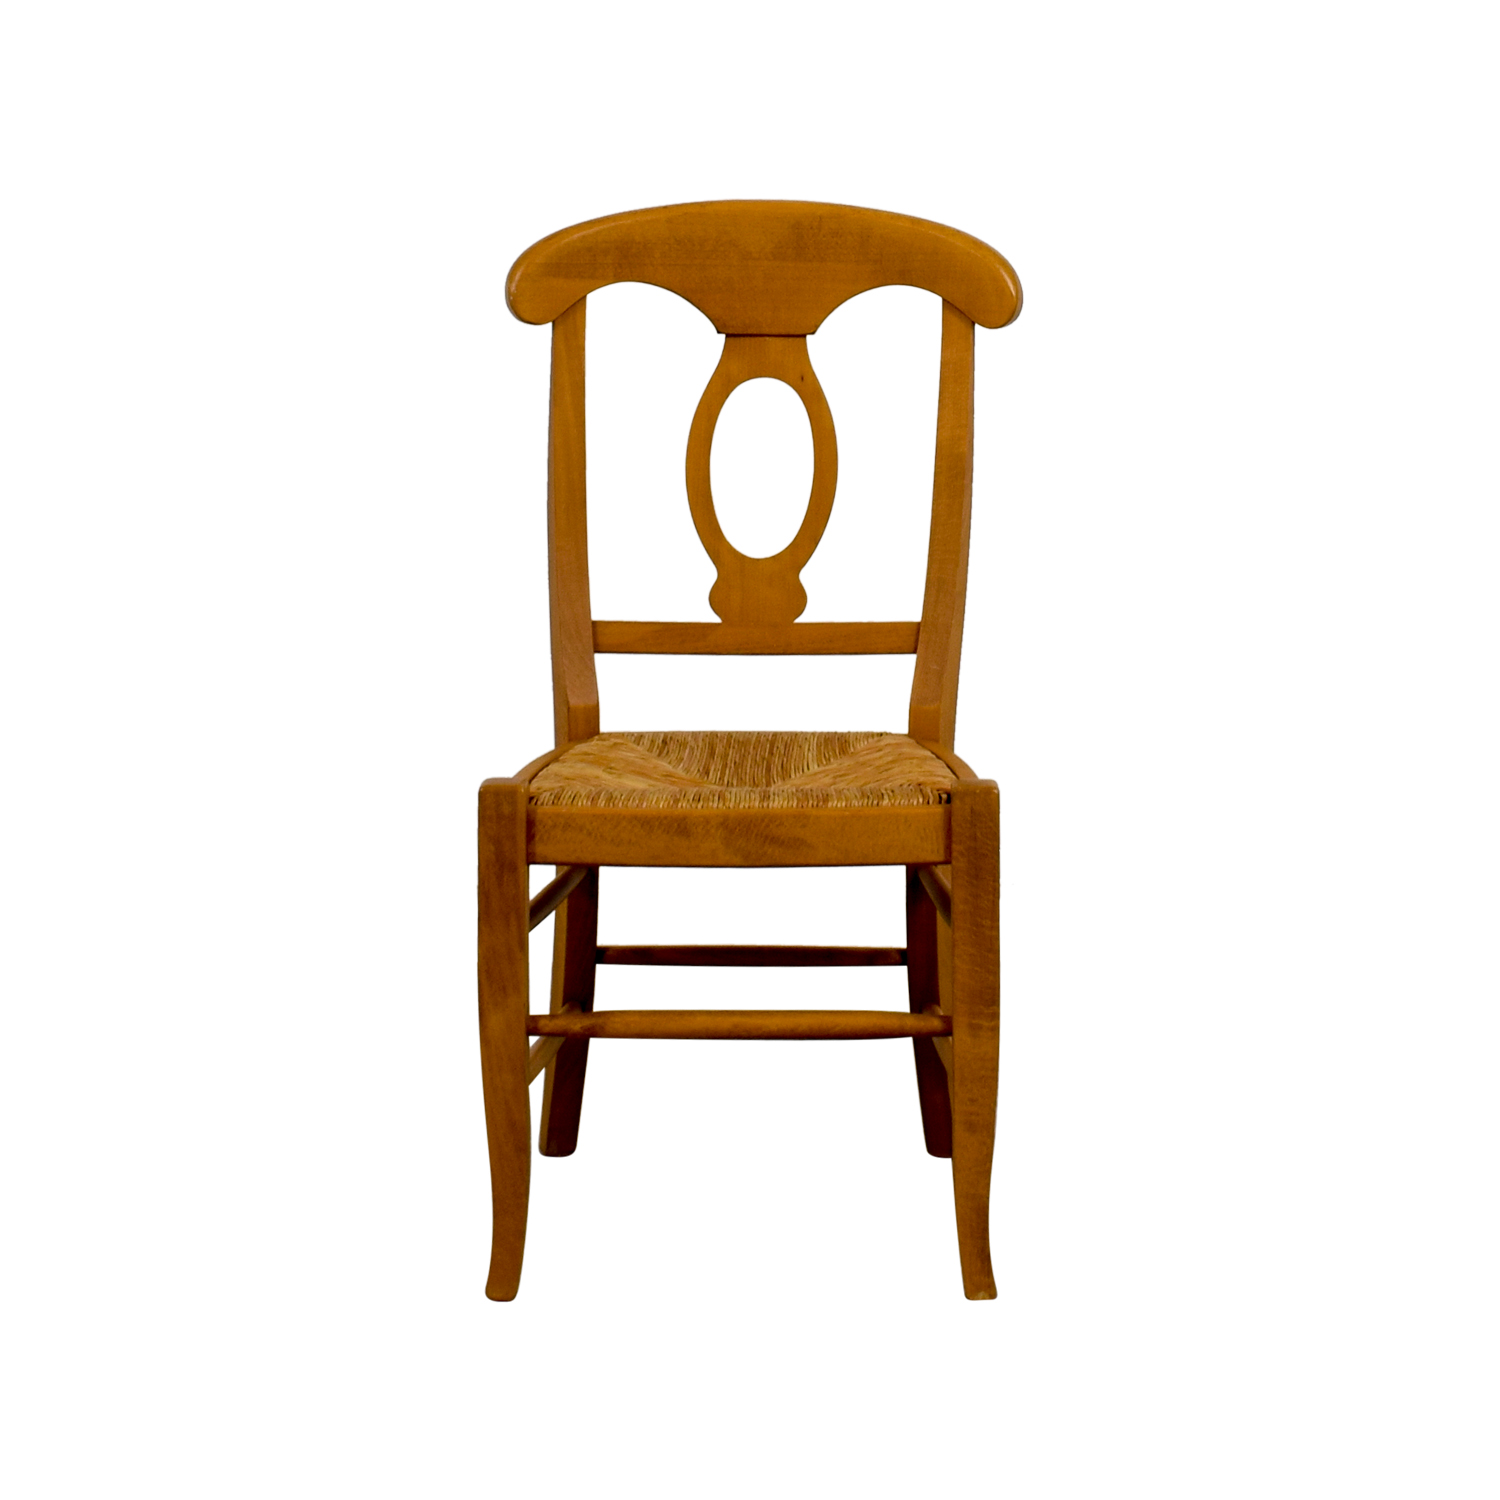 Pottery Barn Pottery Barn Wooden Straw Desk Chair coupon